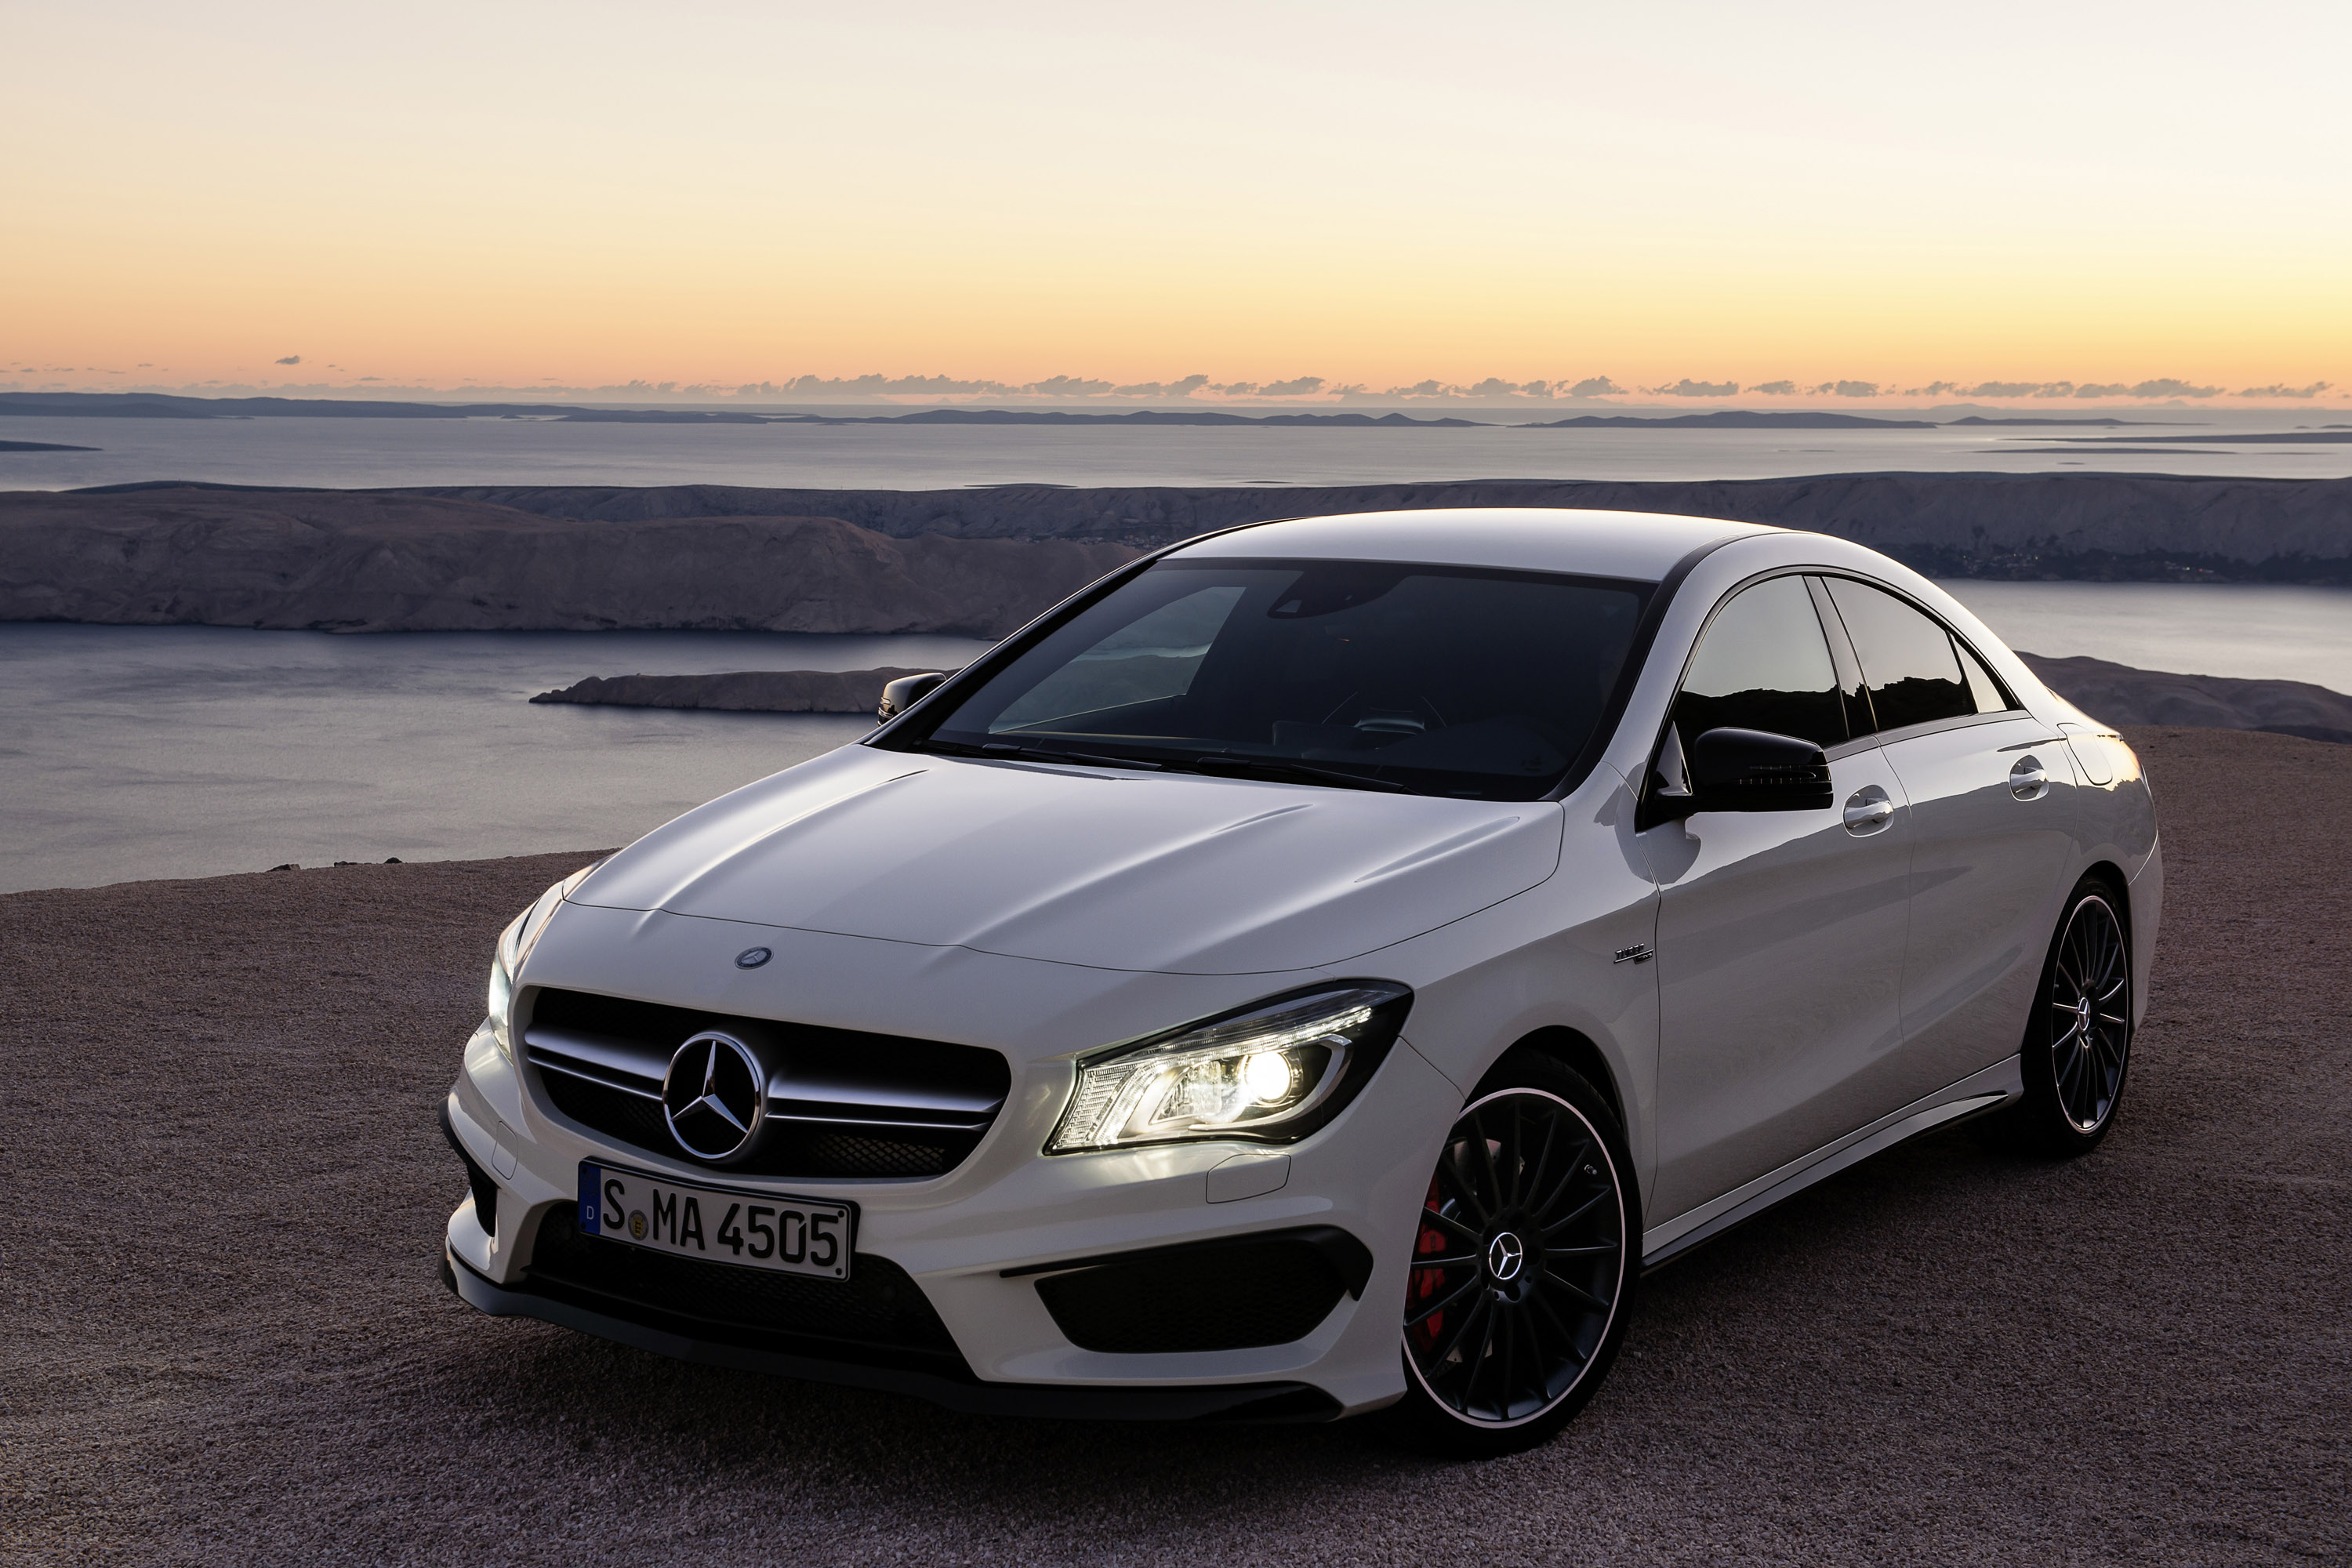 2014 mercedes benz cla 45 amg us price 47 450. Black Bedroom Furniture Sets. Home Design Ideas